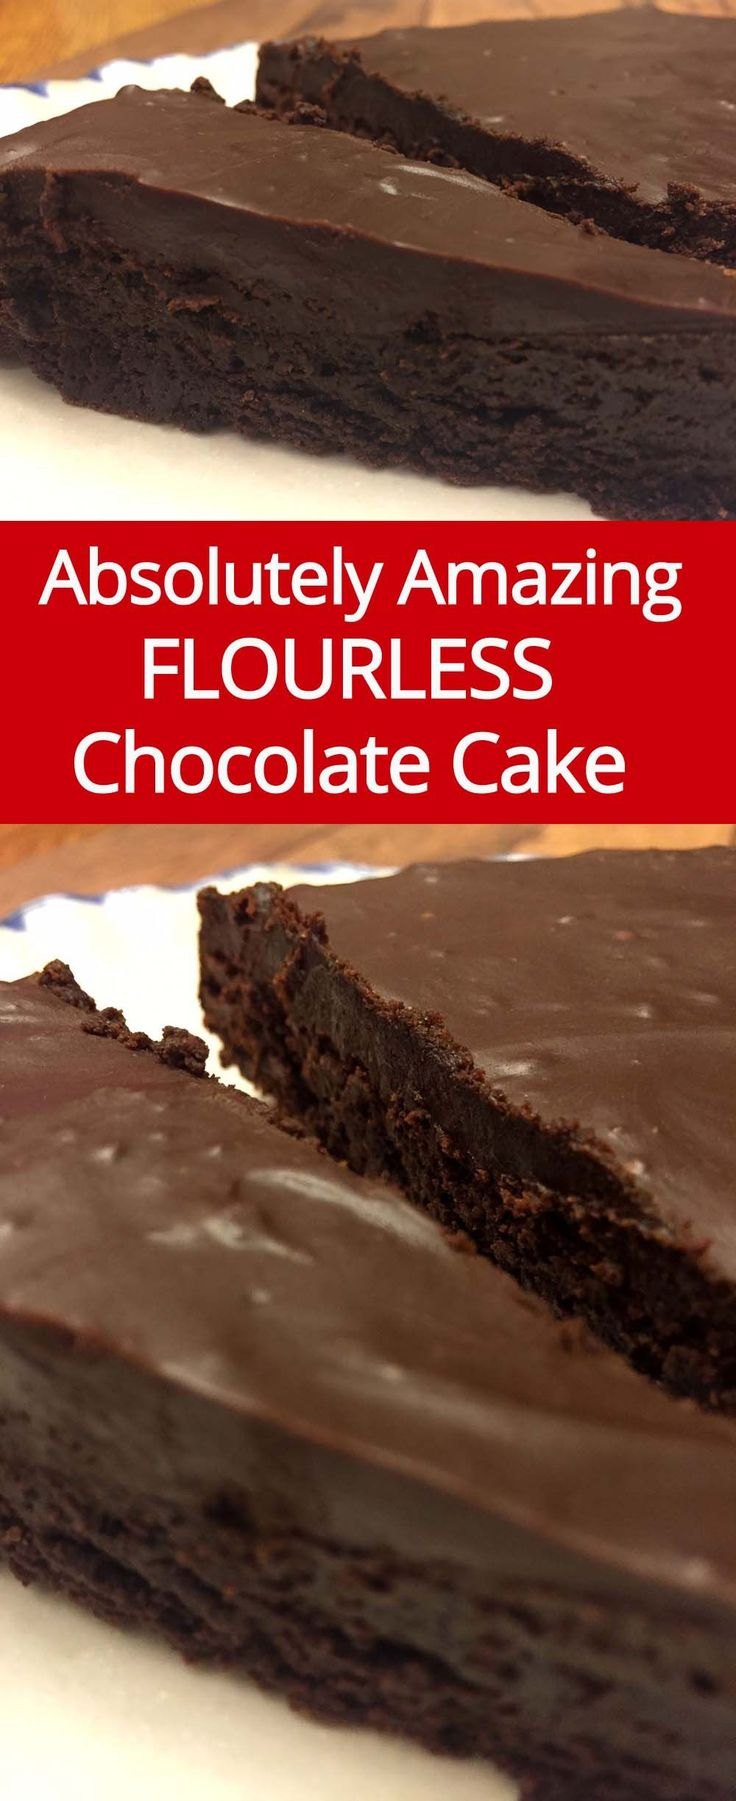 Flourless Chocolate Cake Recipe - Easy & Gluten-Free! Replace sugar with…